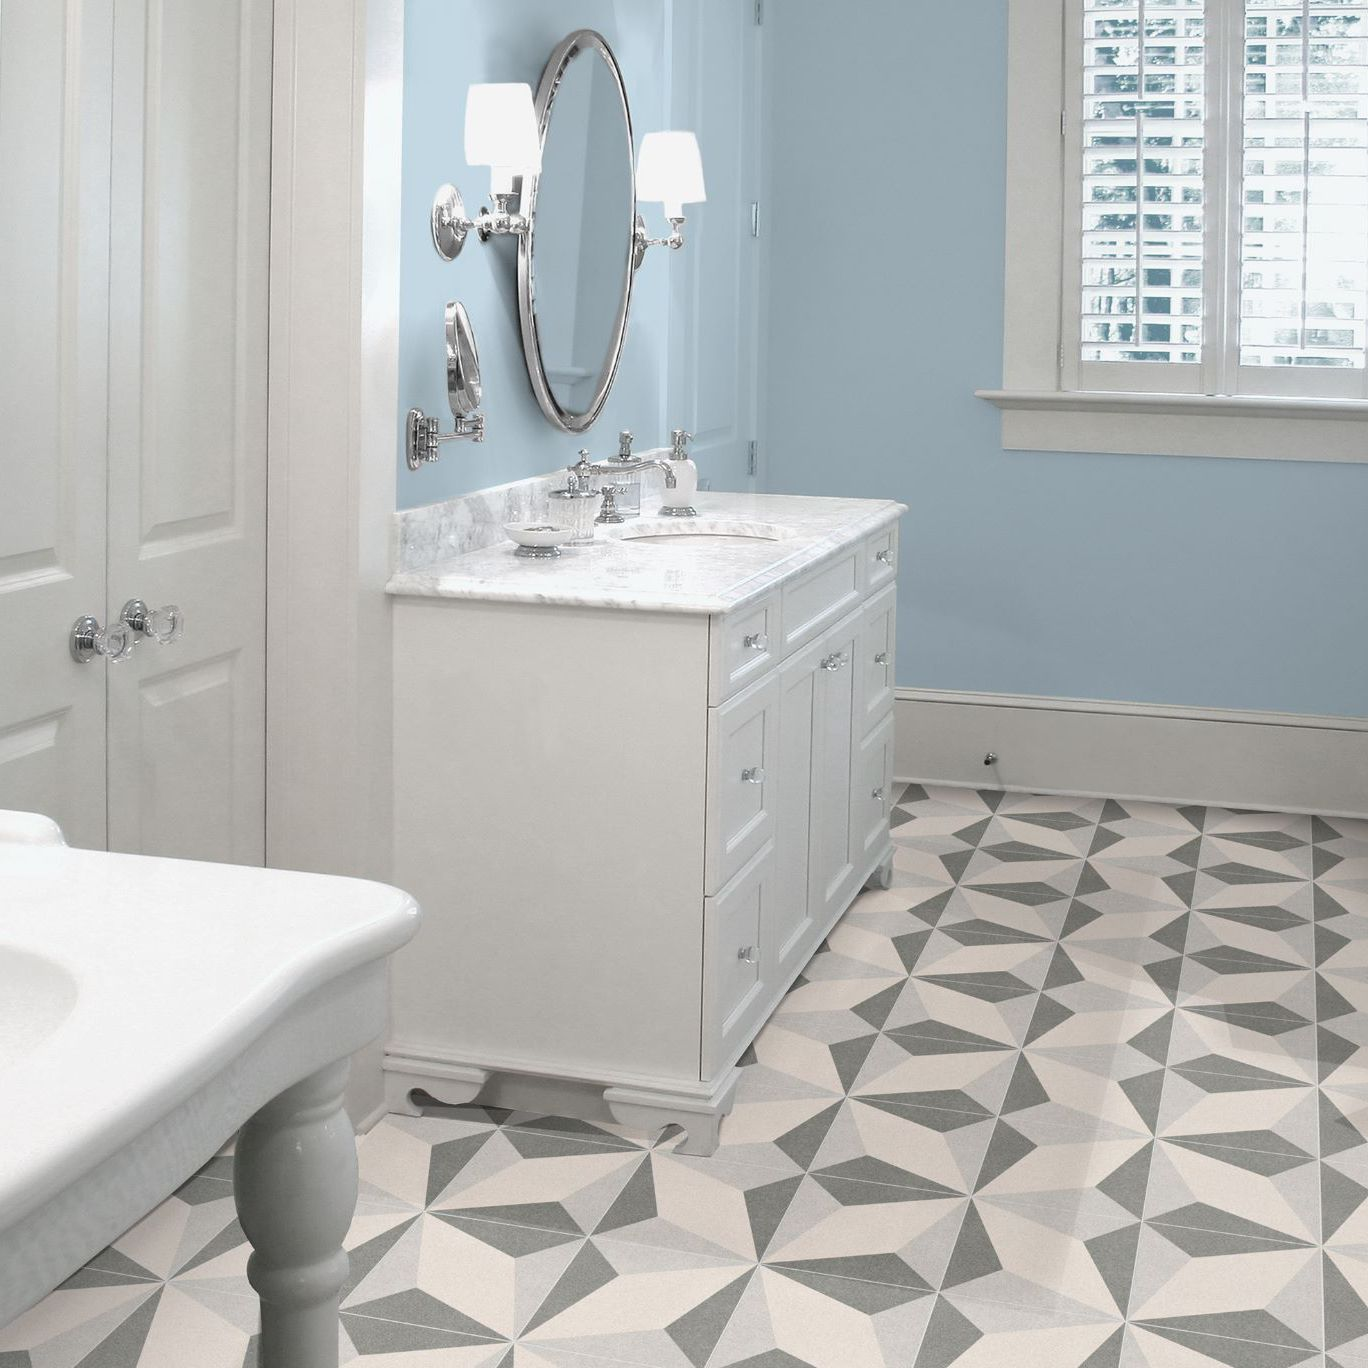 Bathroom tile / floor / porcelain stoneware / patterned - BOREAL ...